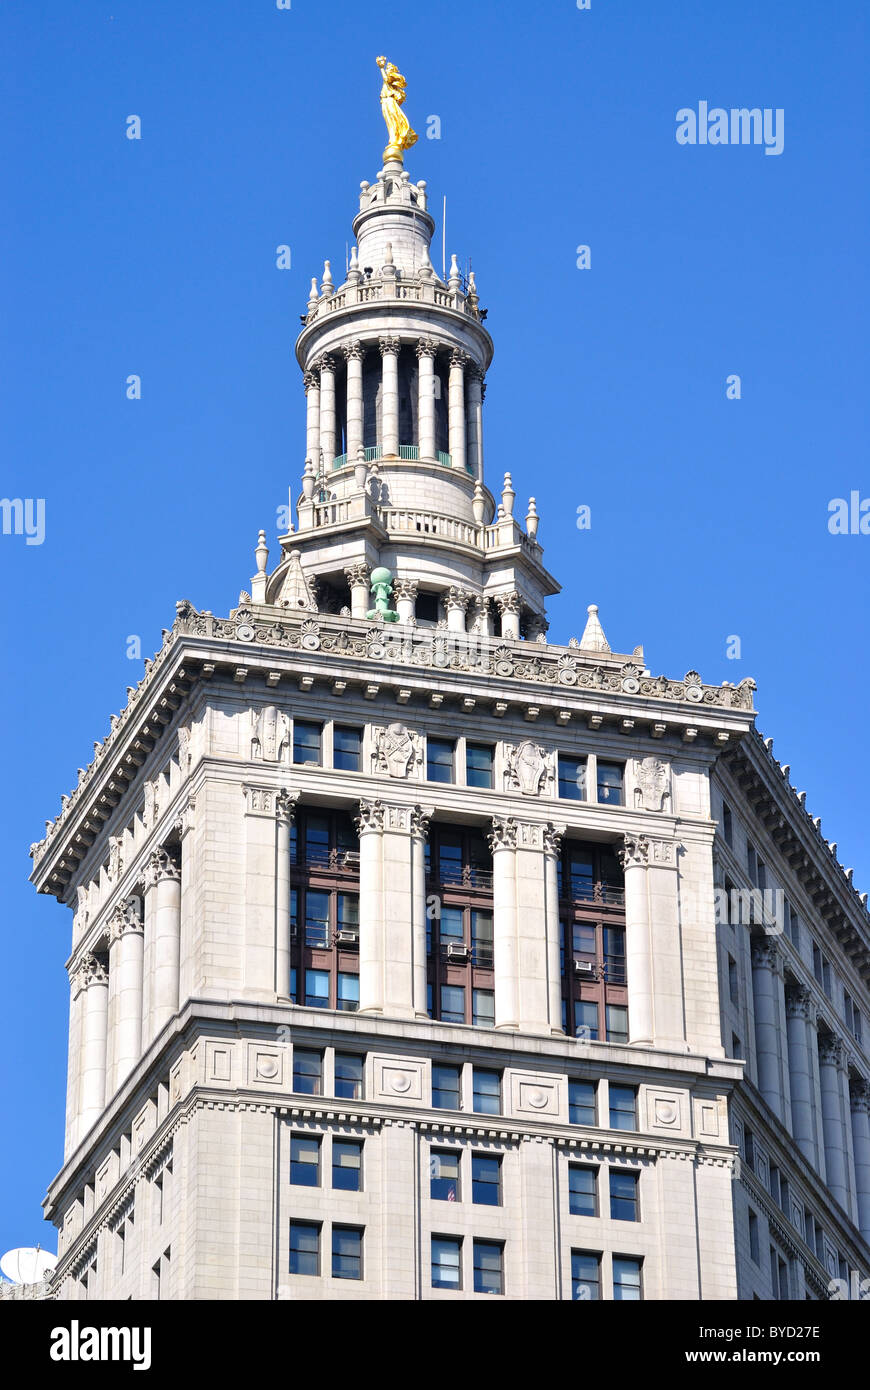 Top of the Municipal Building in New York City. - Stock Image